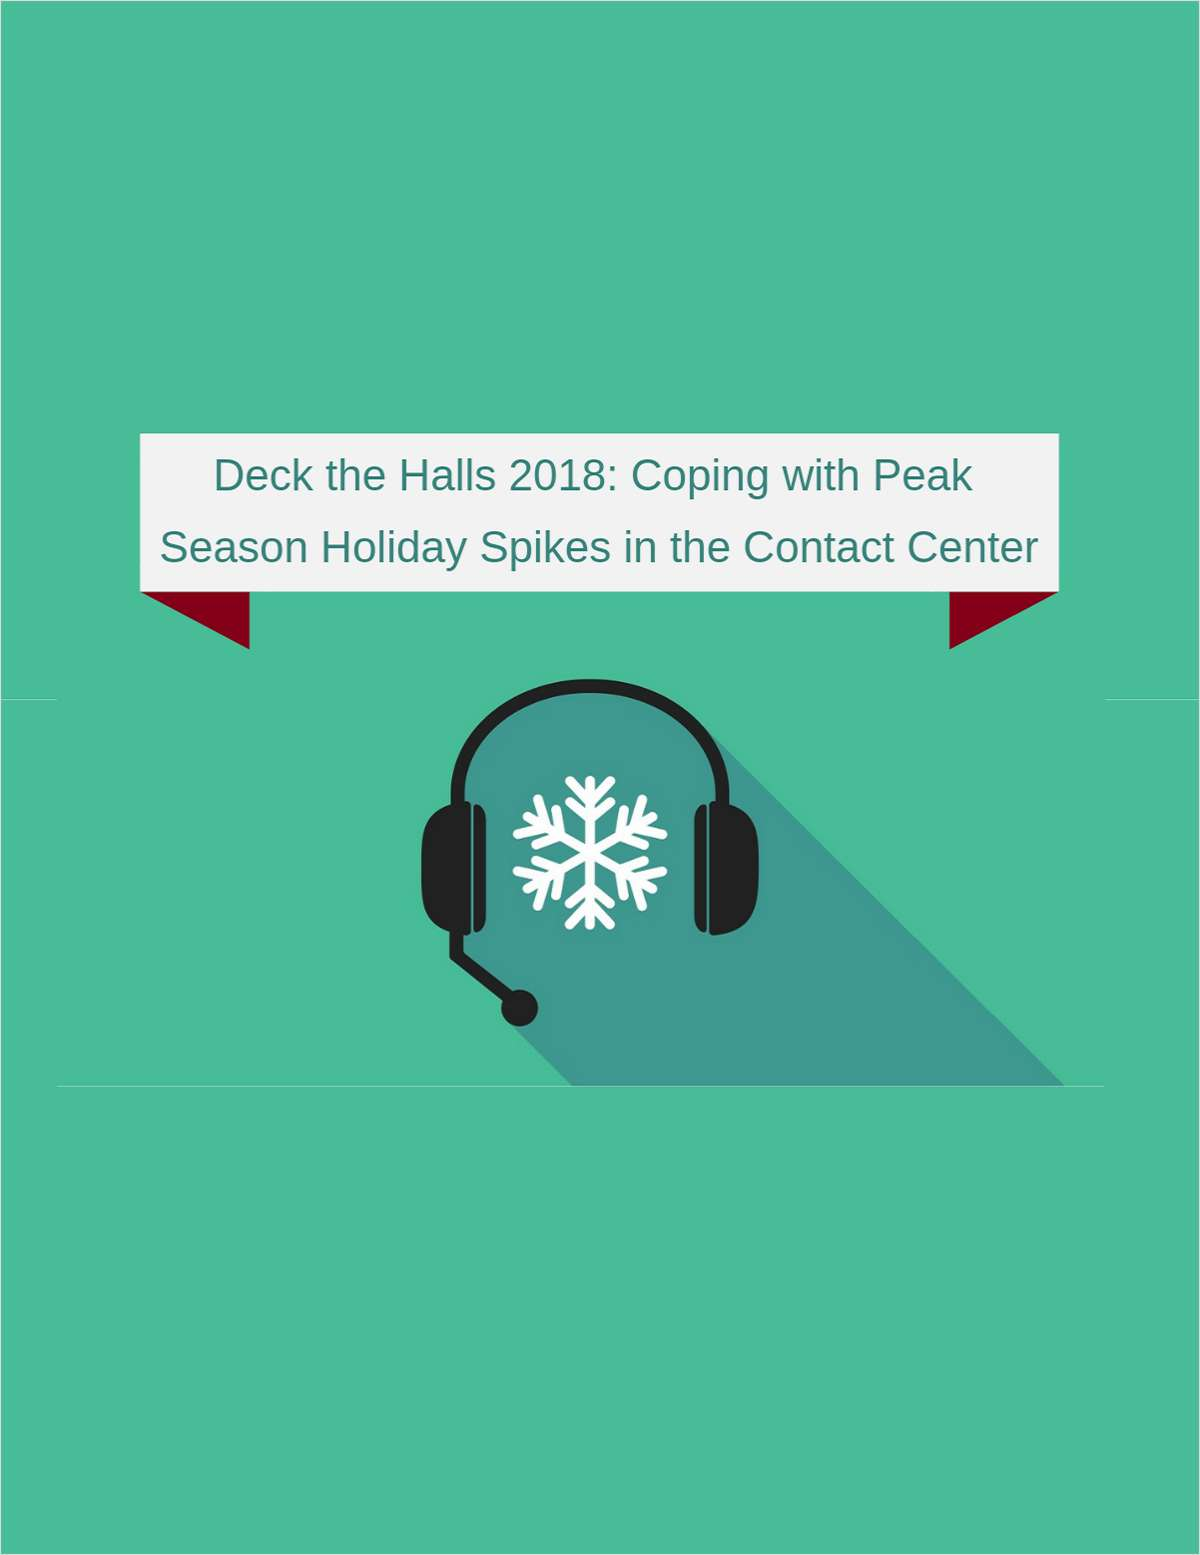 Deck the Halls 2018: Coping with Peak Season Holiday Spikes in the Contact Center